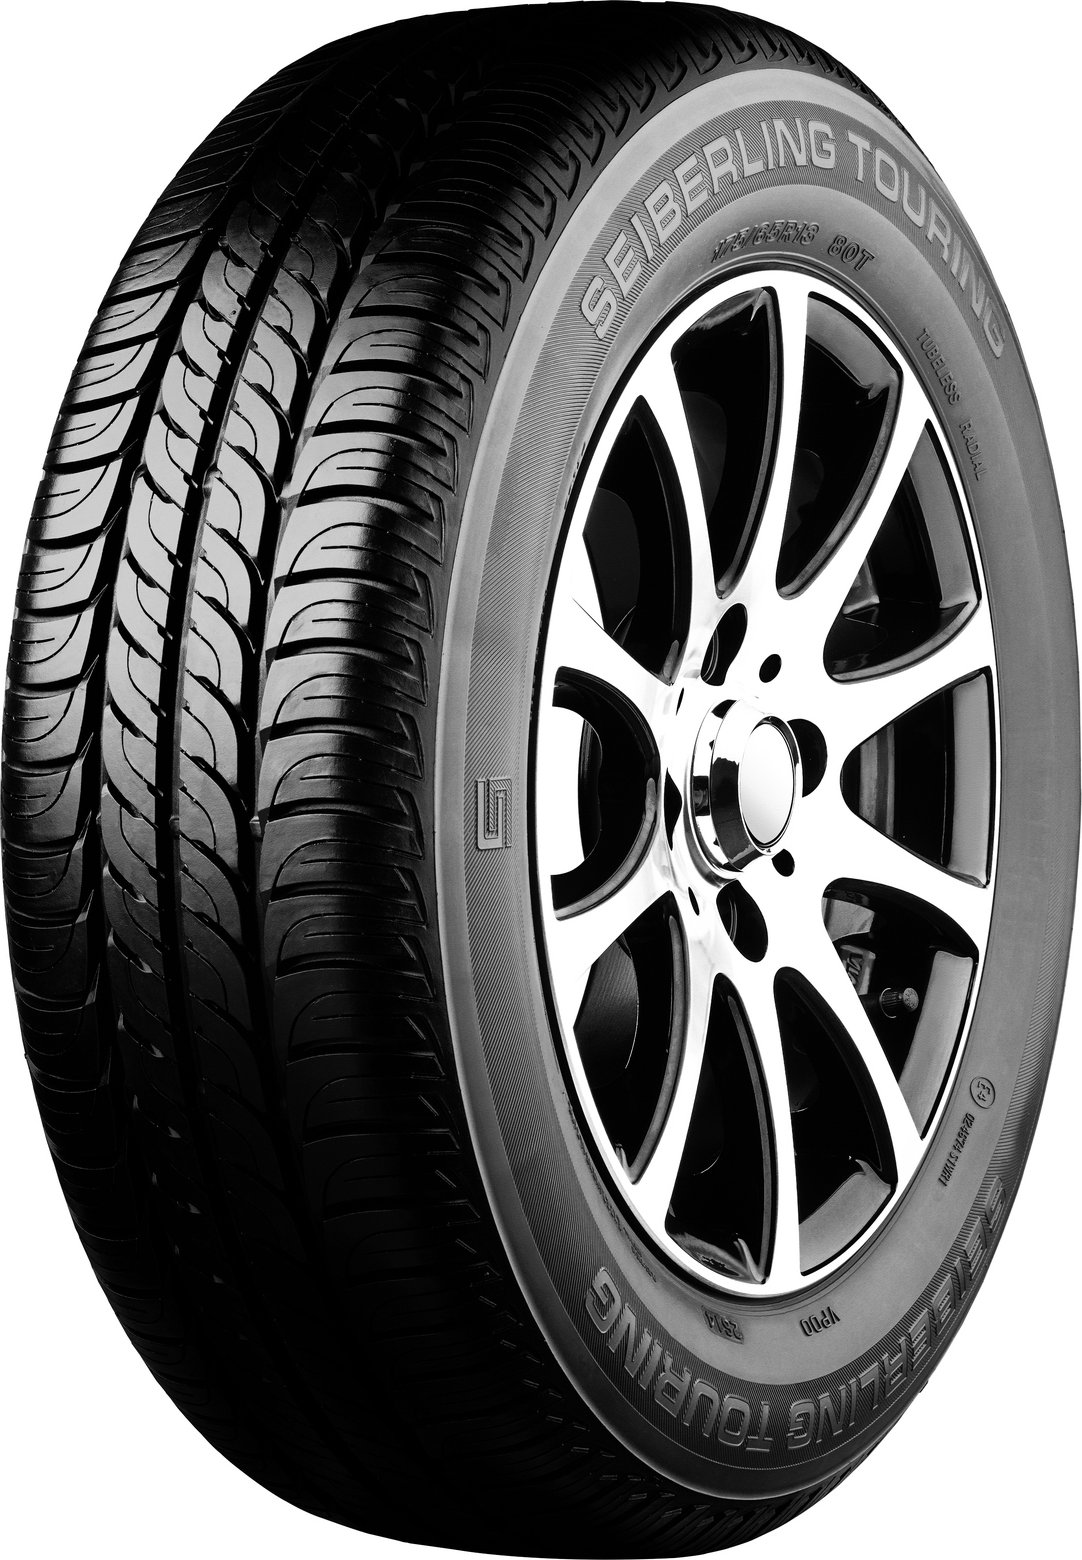 SEIBERLING 215//60//R17 96H TOURING 2 by BRIDGESTONE